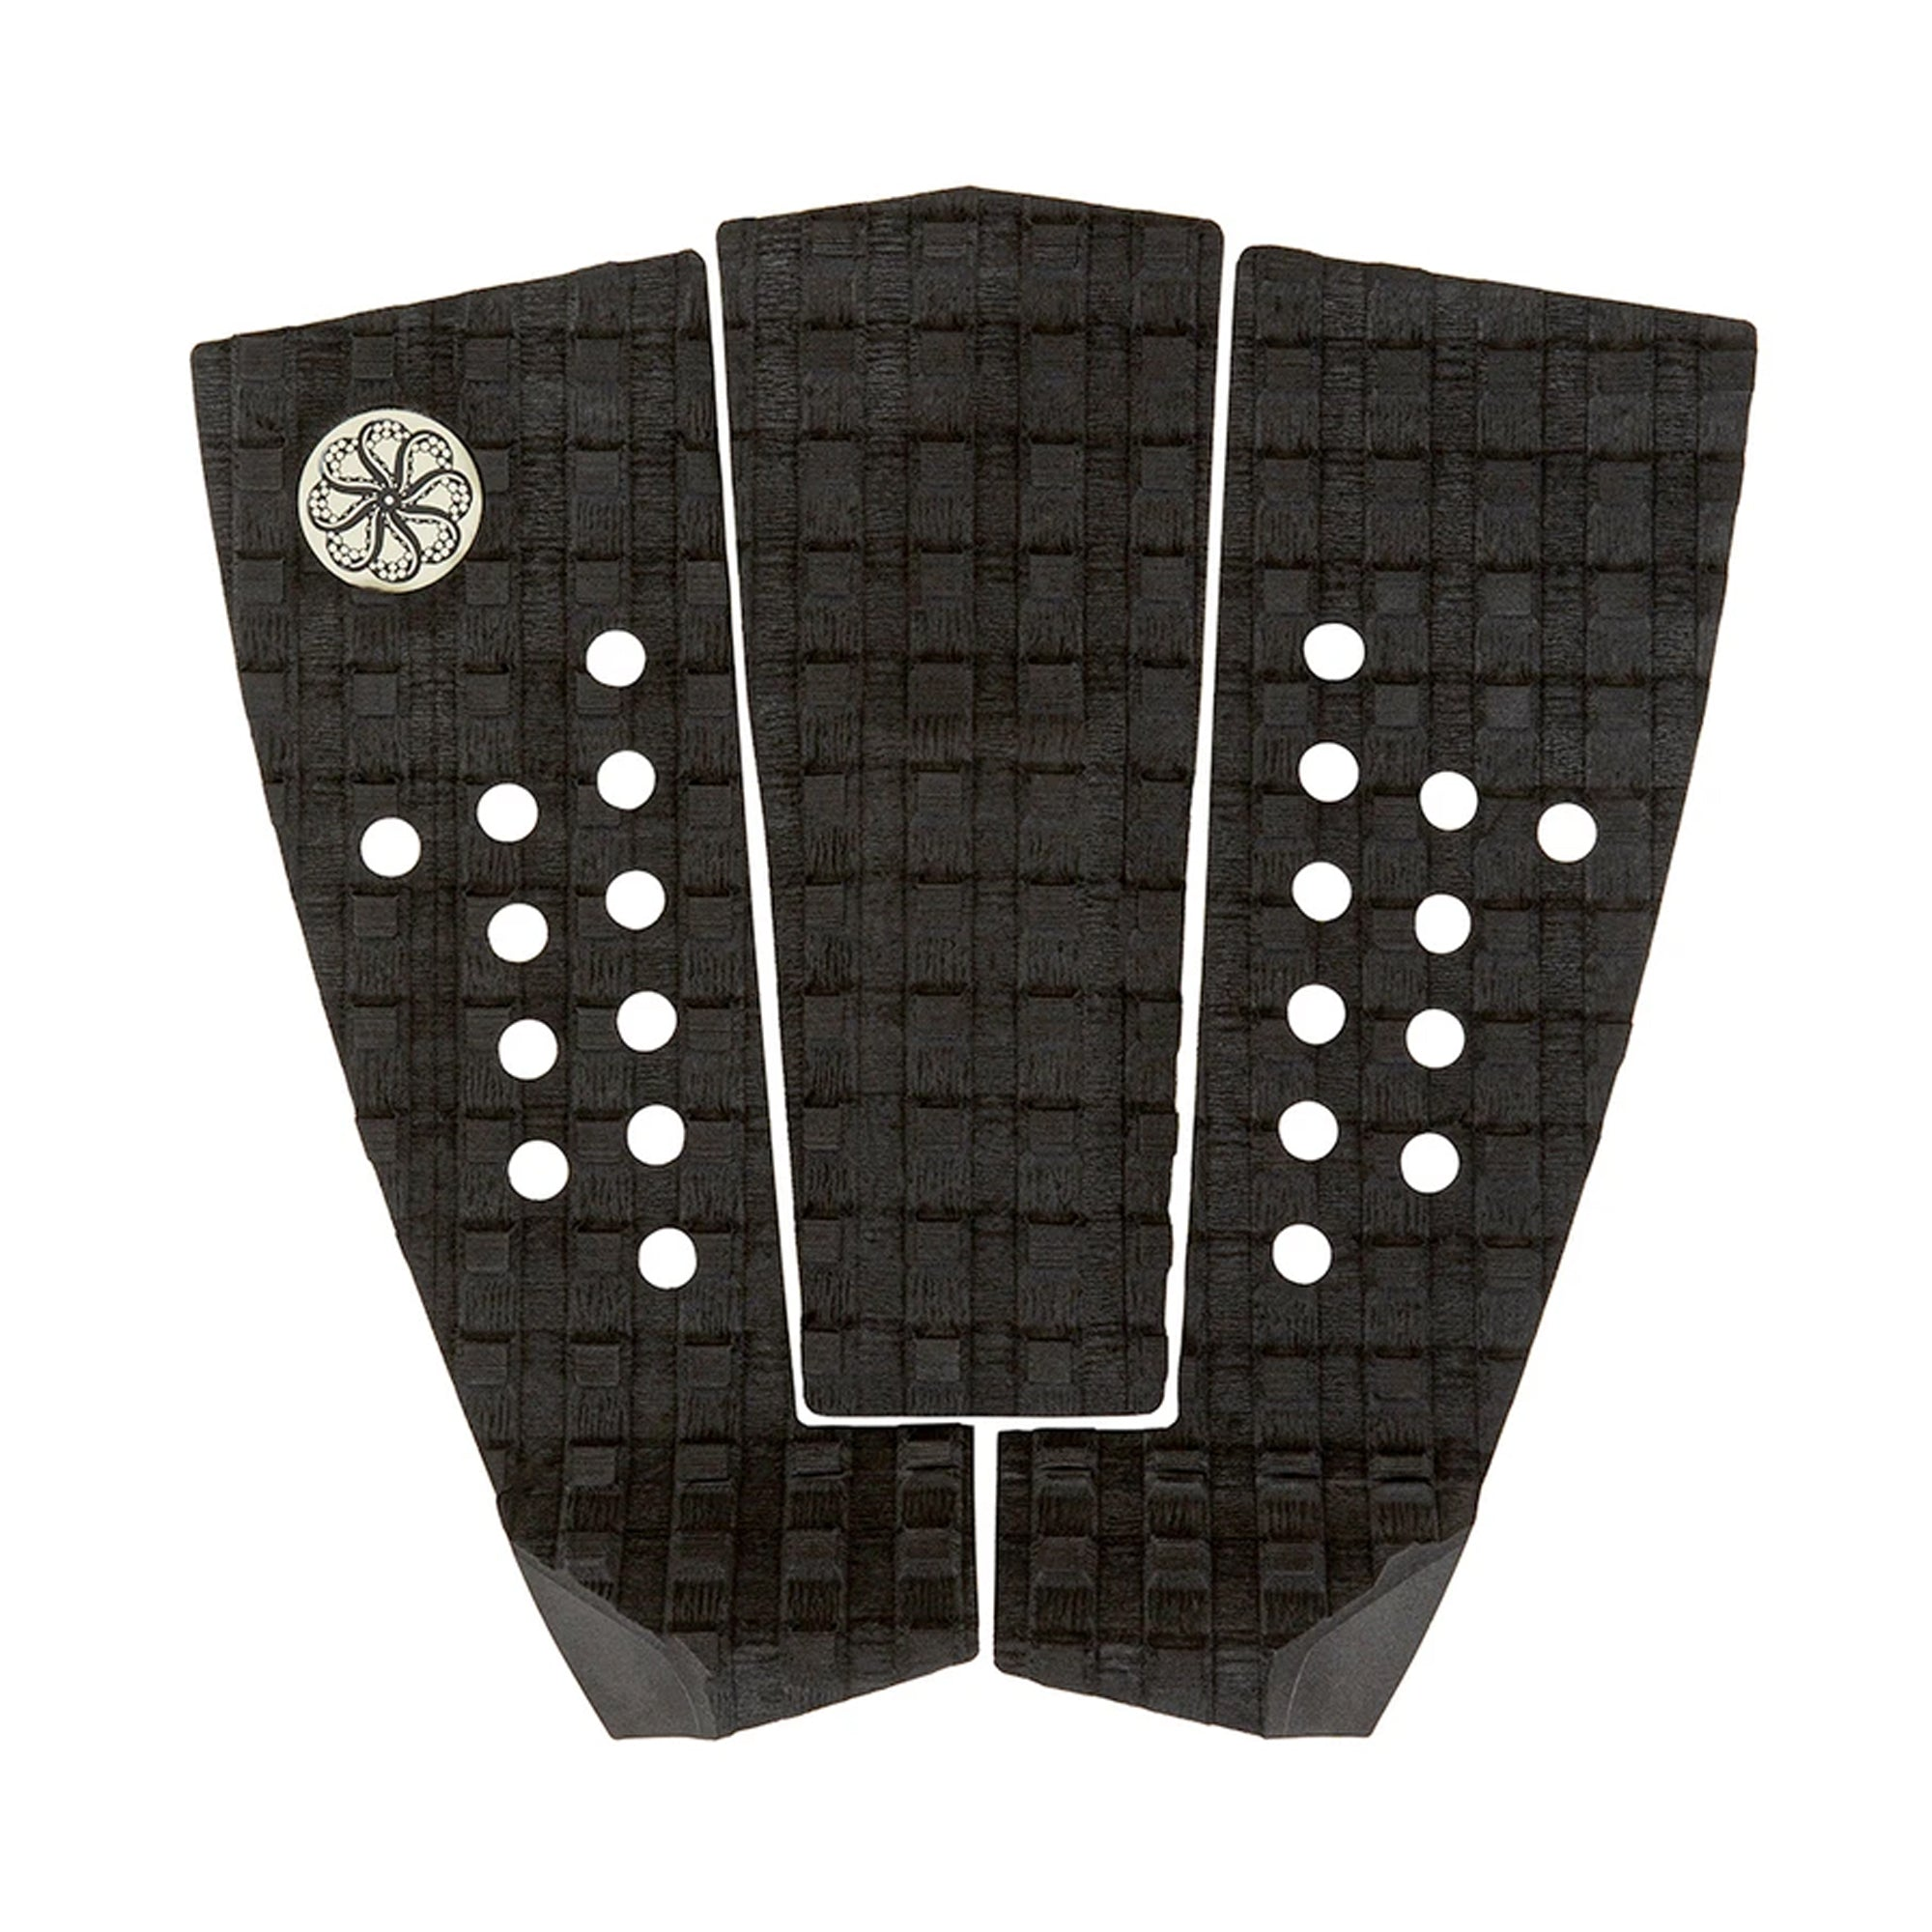 Octopus Scramble II Arch Traction Pad - Black